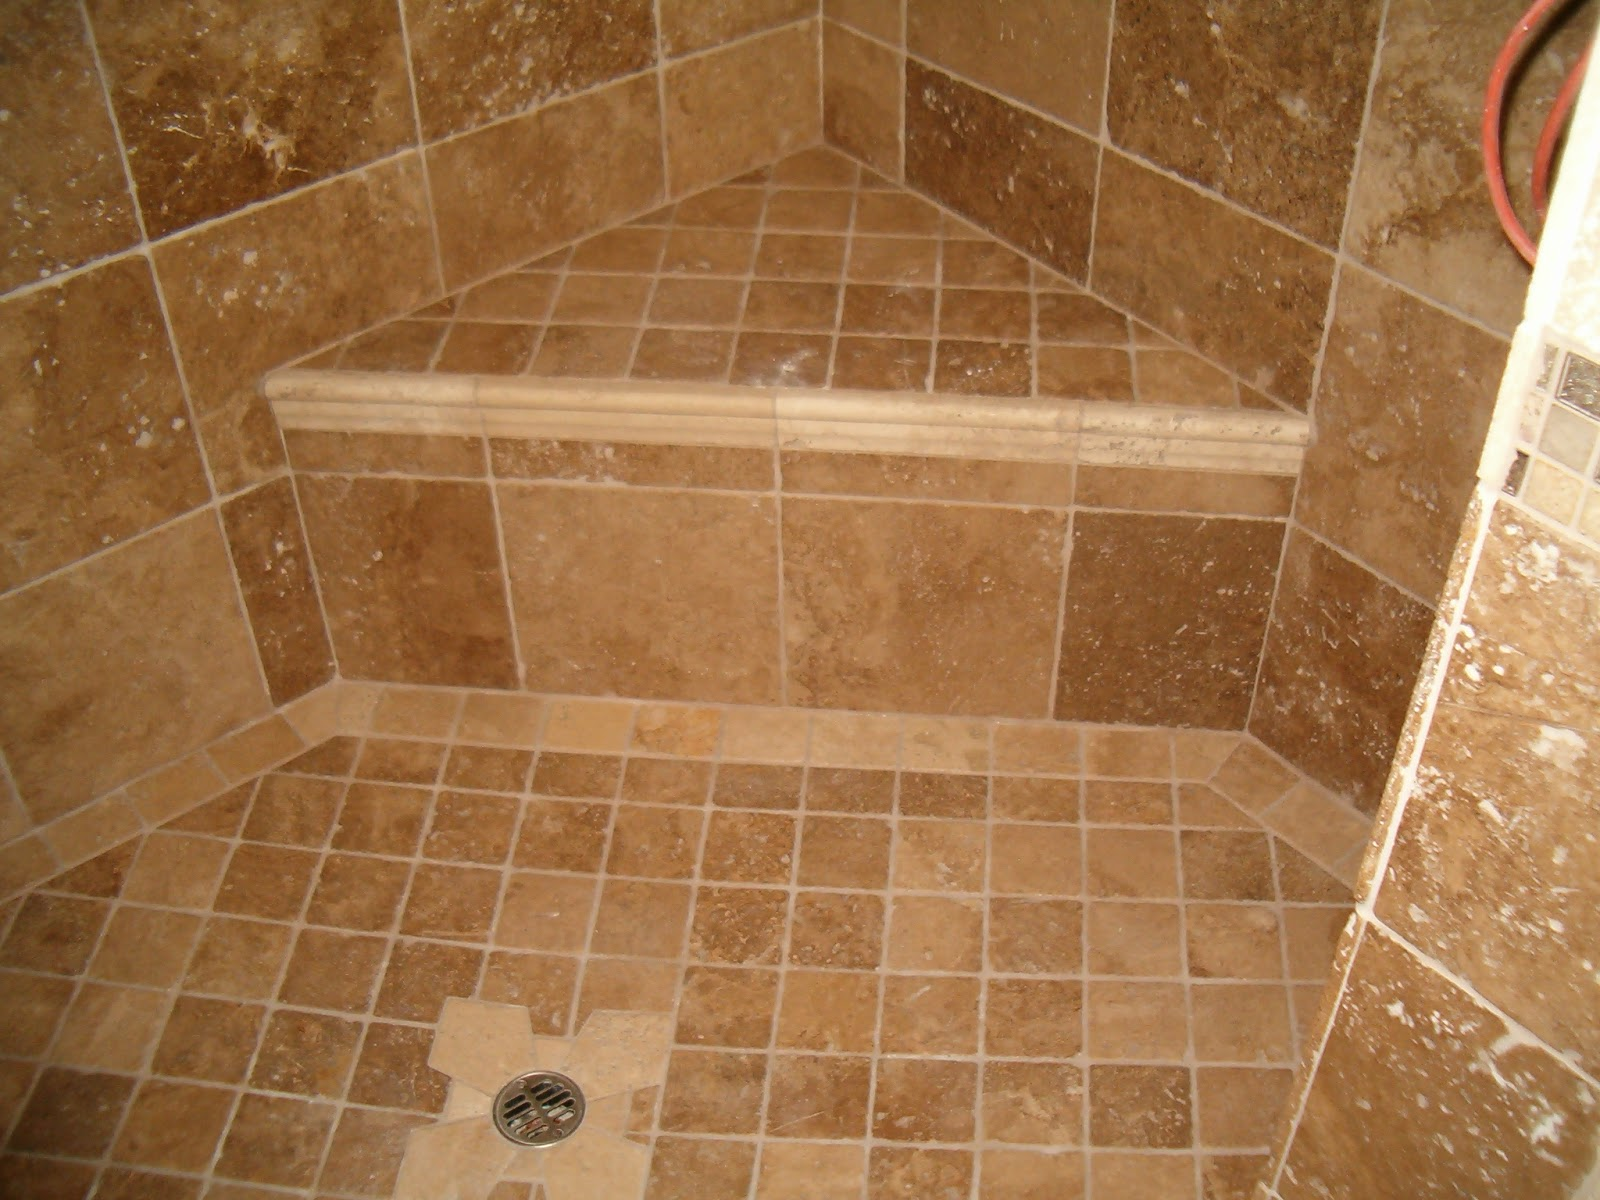 Tiling bathroom shower - large and beautiful photos. Photo to select ...